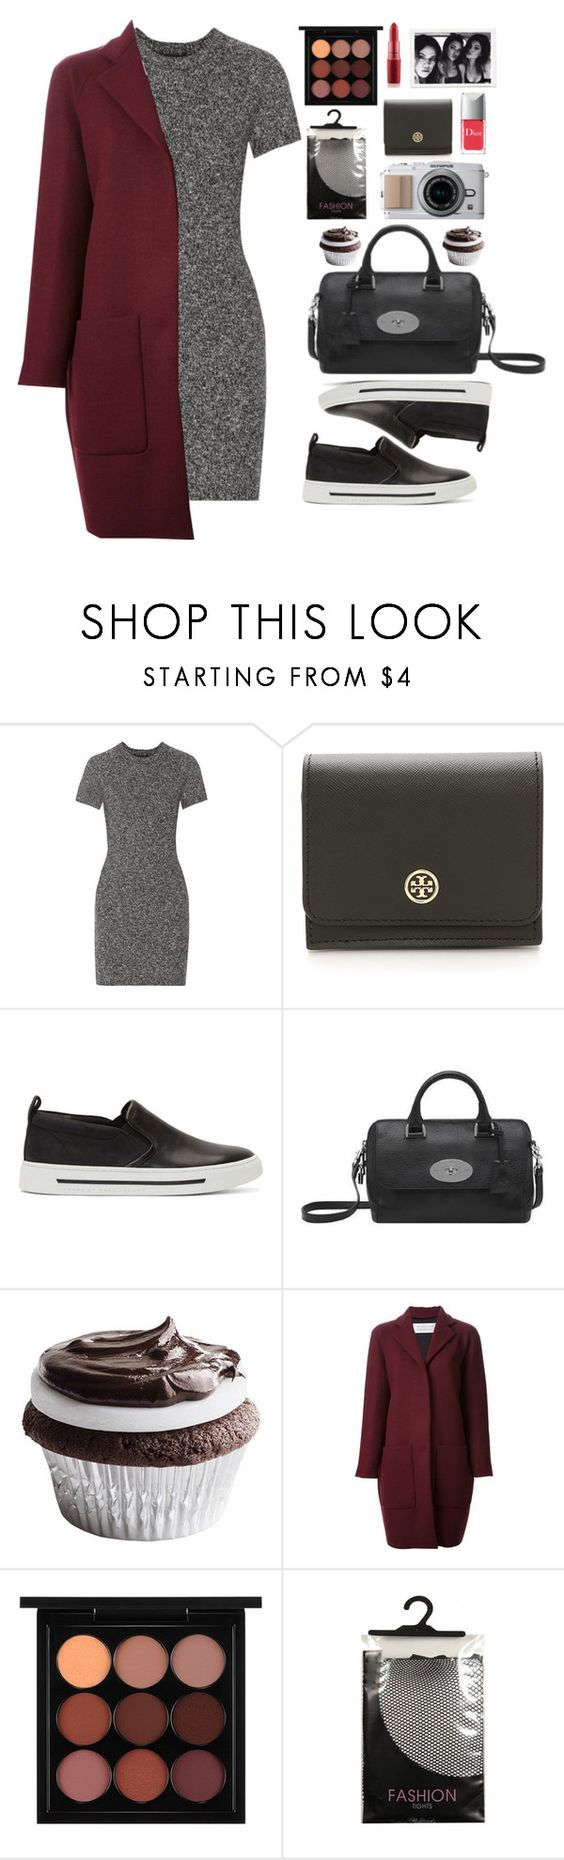 """""""I Found A Girl"""" by vanessasimao1999 ❤ liked on Polyvore featuring Theory, Tory Burch, Marc by Marc Jacobs, Mulberry, Gianluca Capannolo, MAC Cosmetics and Christian Dior"""